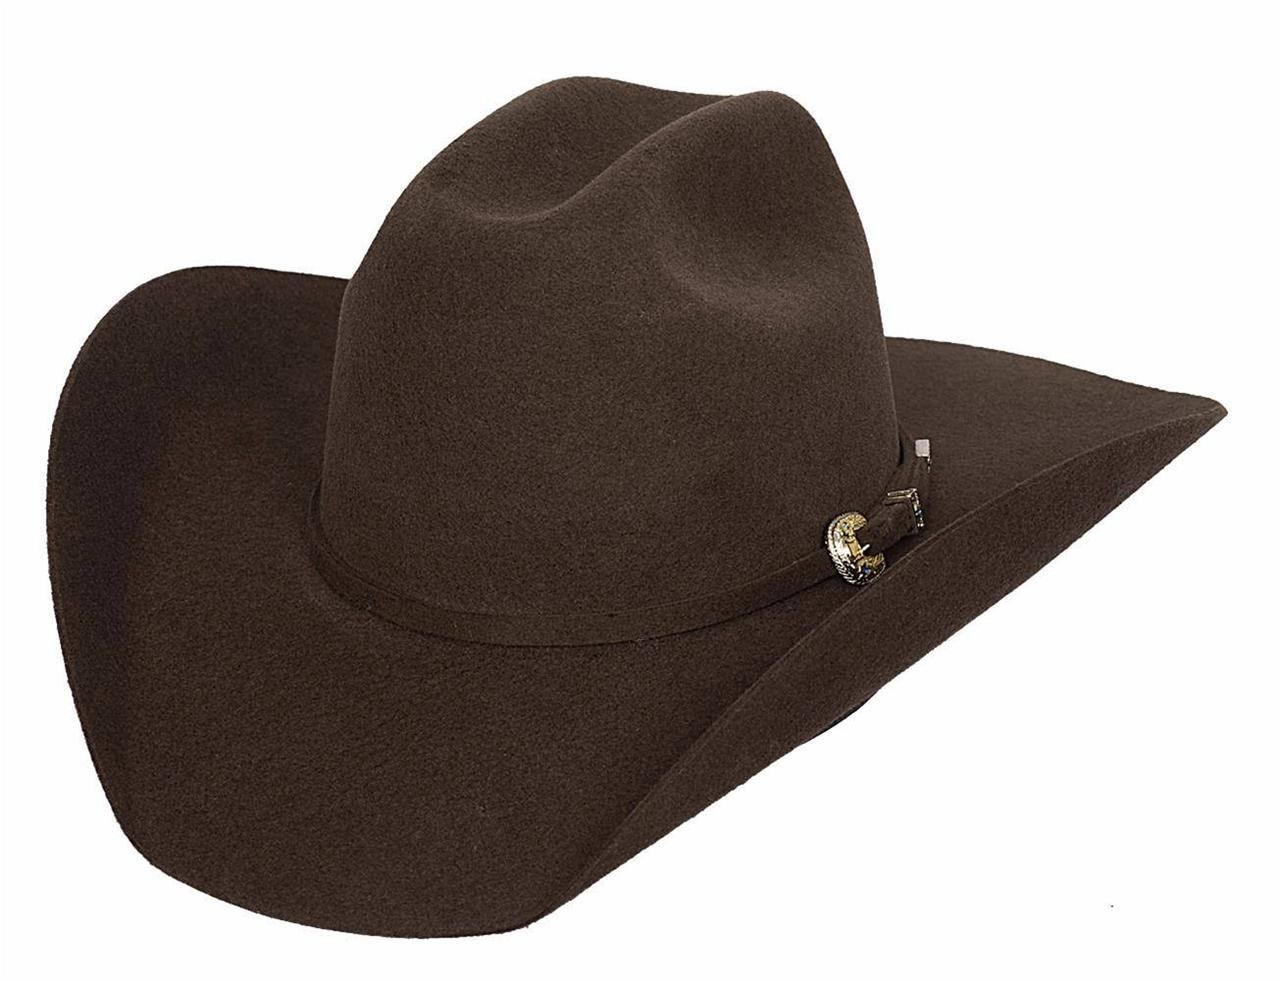 Nouveau Bullhide Chapeaux 2412N COW-BOY collection Little Big Horn Naturel Chapeau De Cow-boy